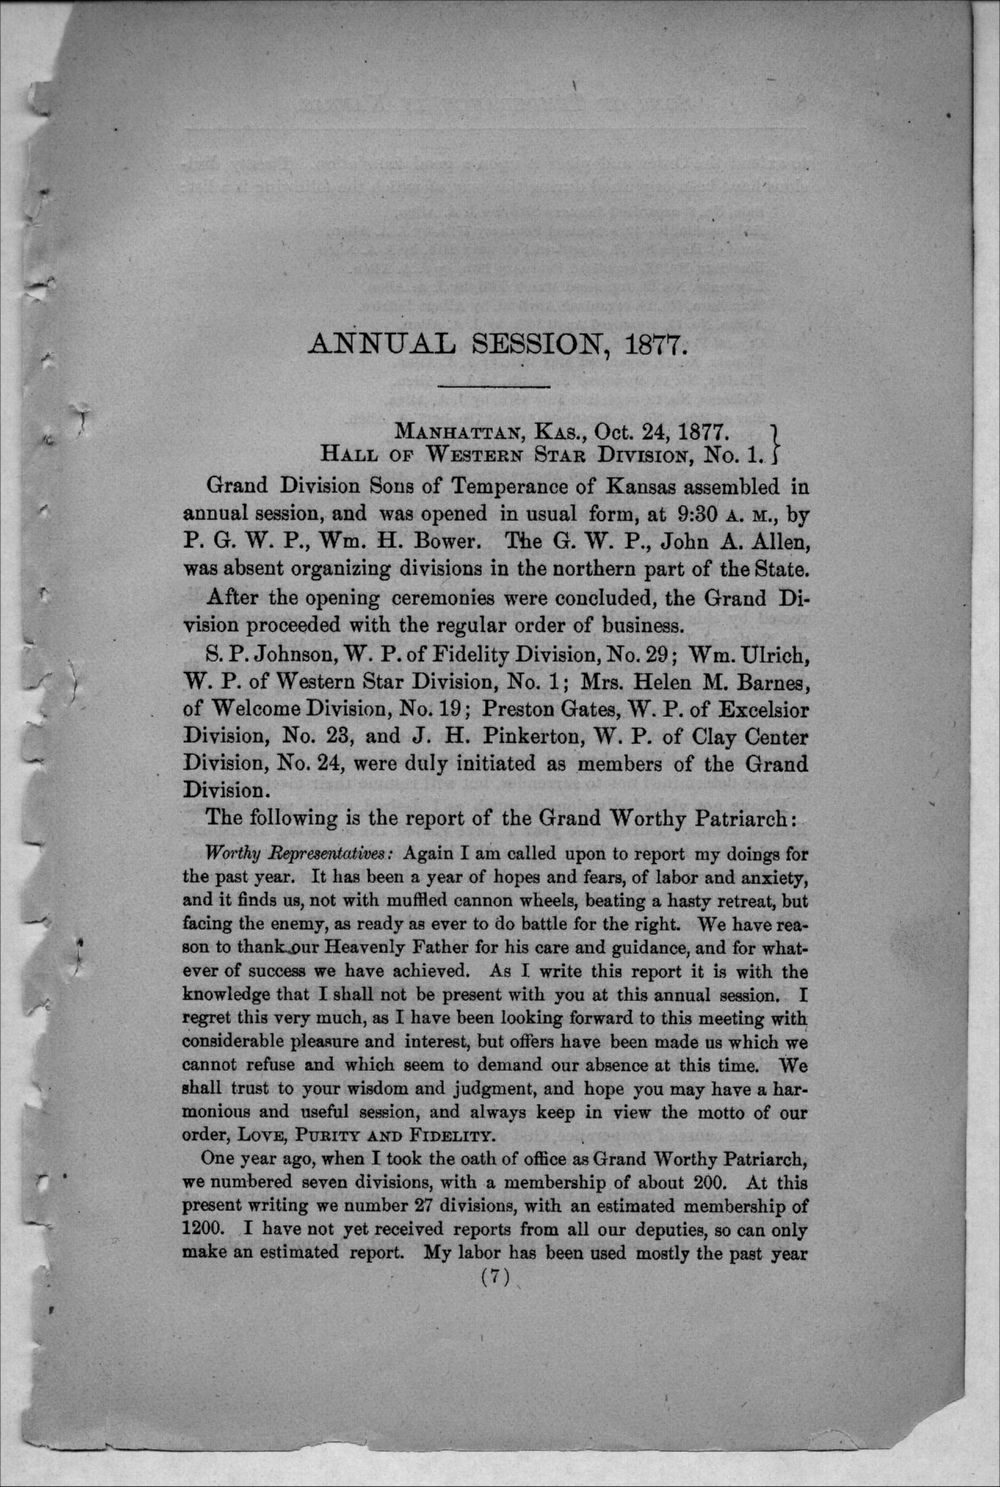 Journal of proceedings of the Grand Division of the Sons of Temperance of Kansas - 7